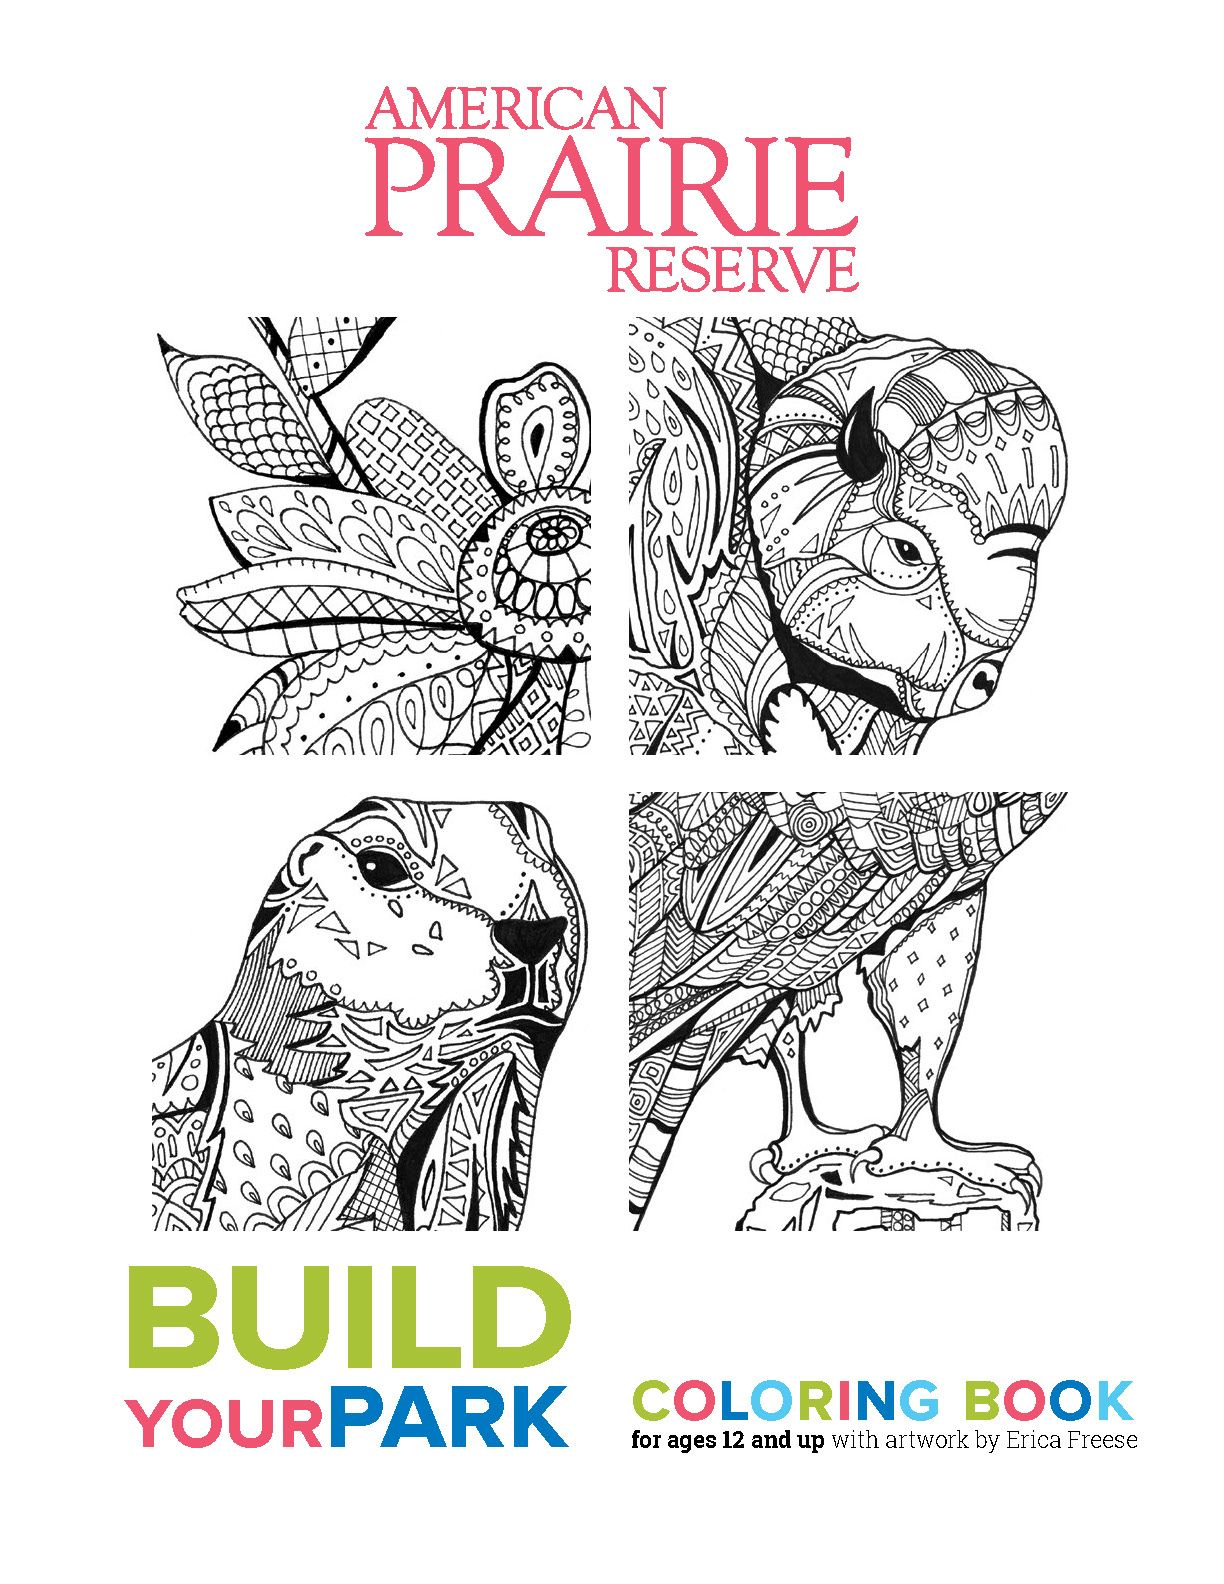 free nature coloring pages for ages 12 and up download this